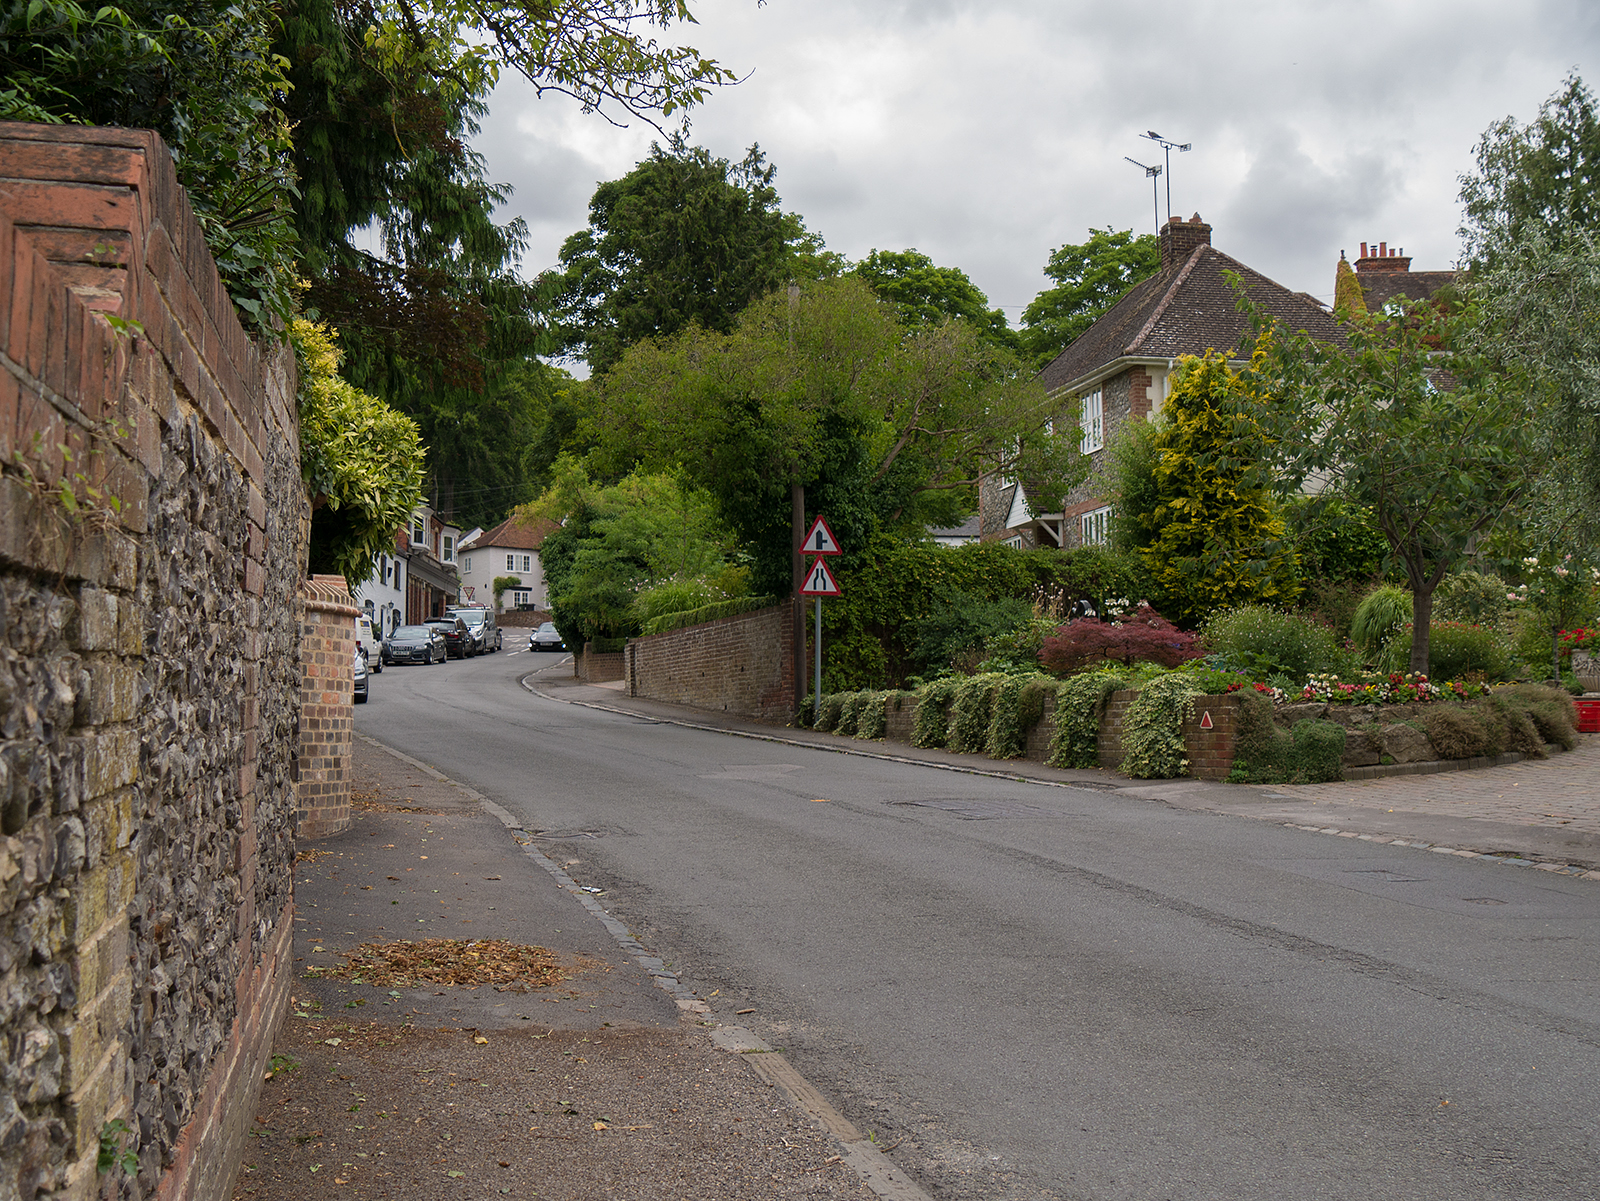 Further up the road in Whitchurch